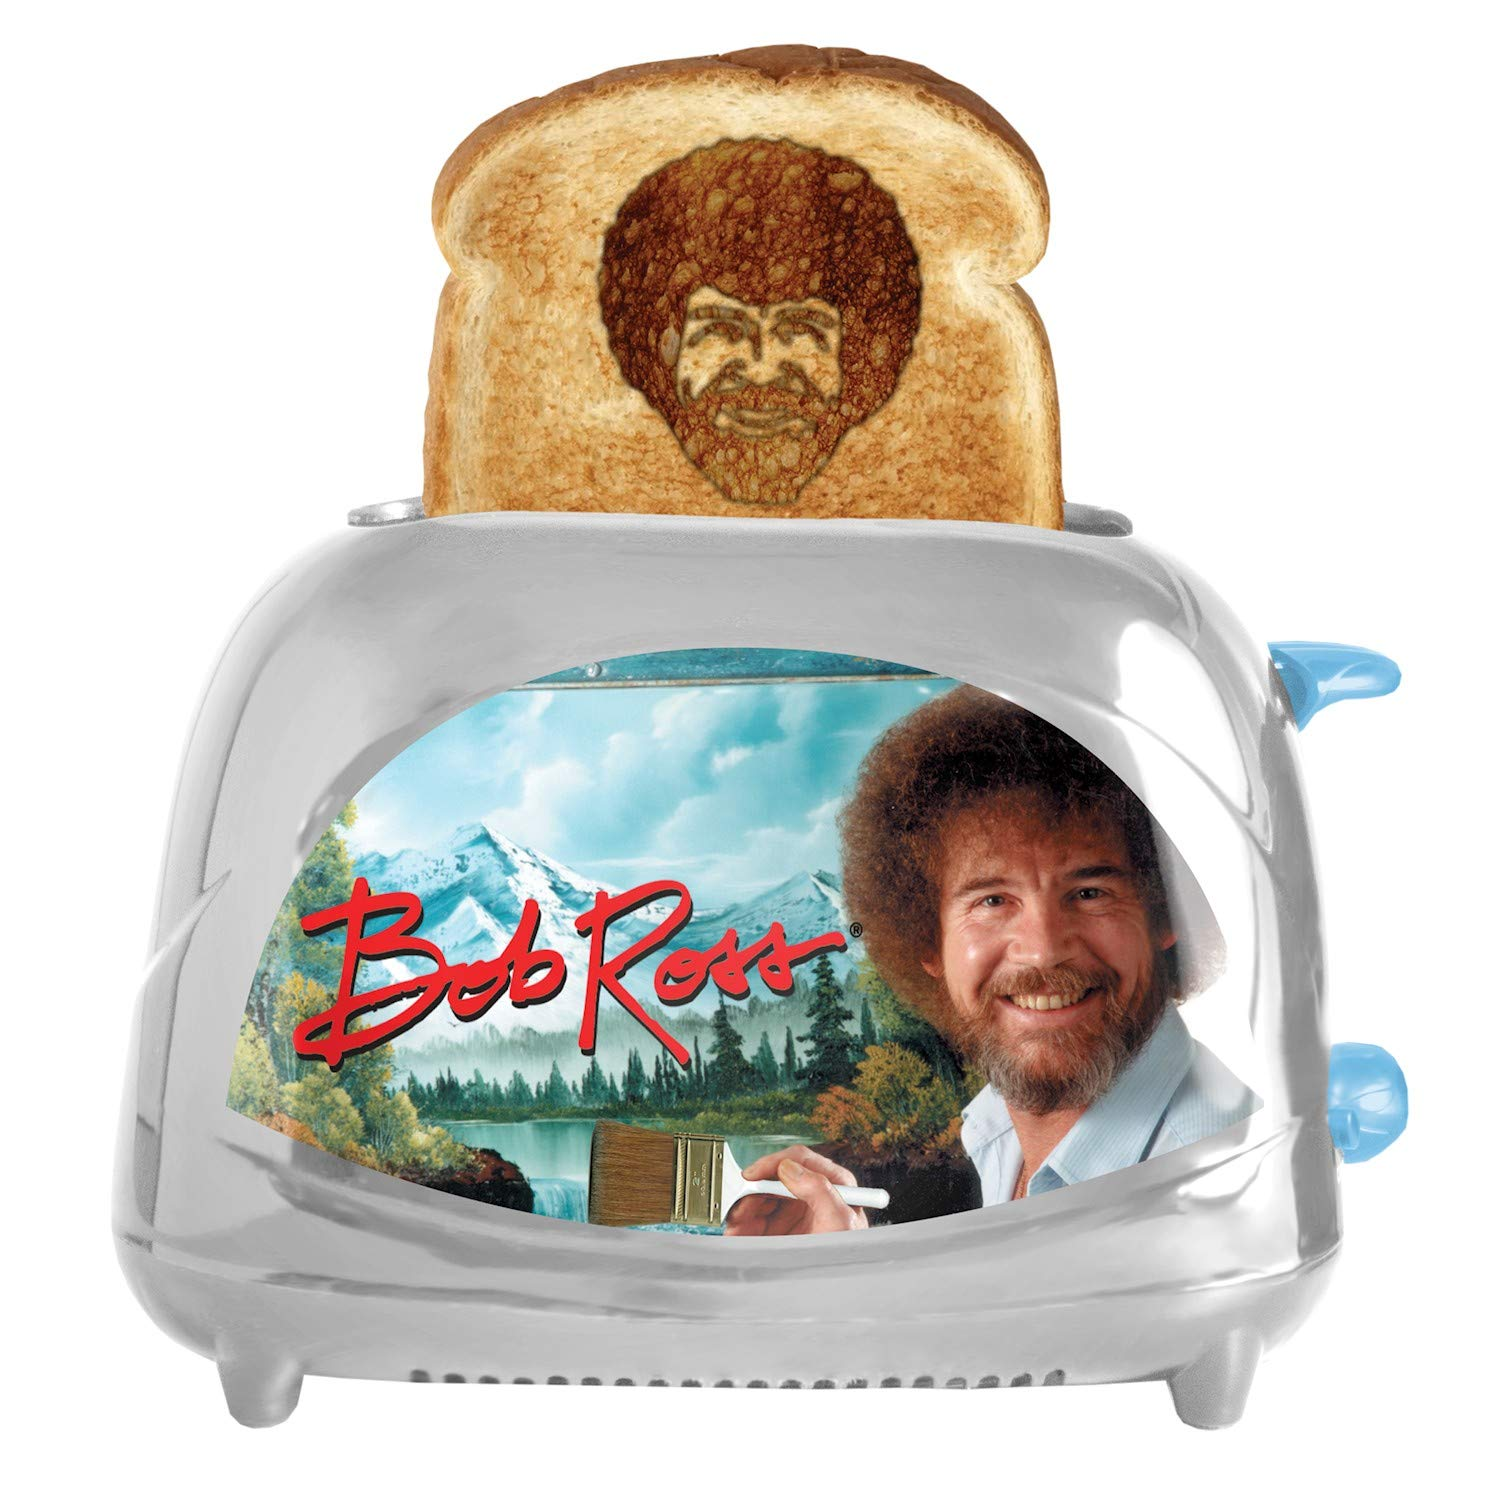 Bob Ross Toaster Toasts Bob's Iconic Face onto Your Toast